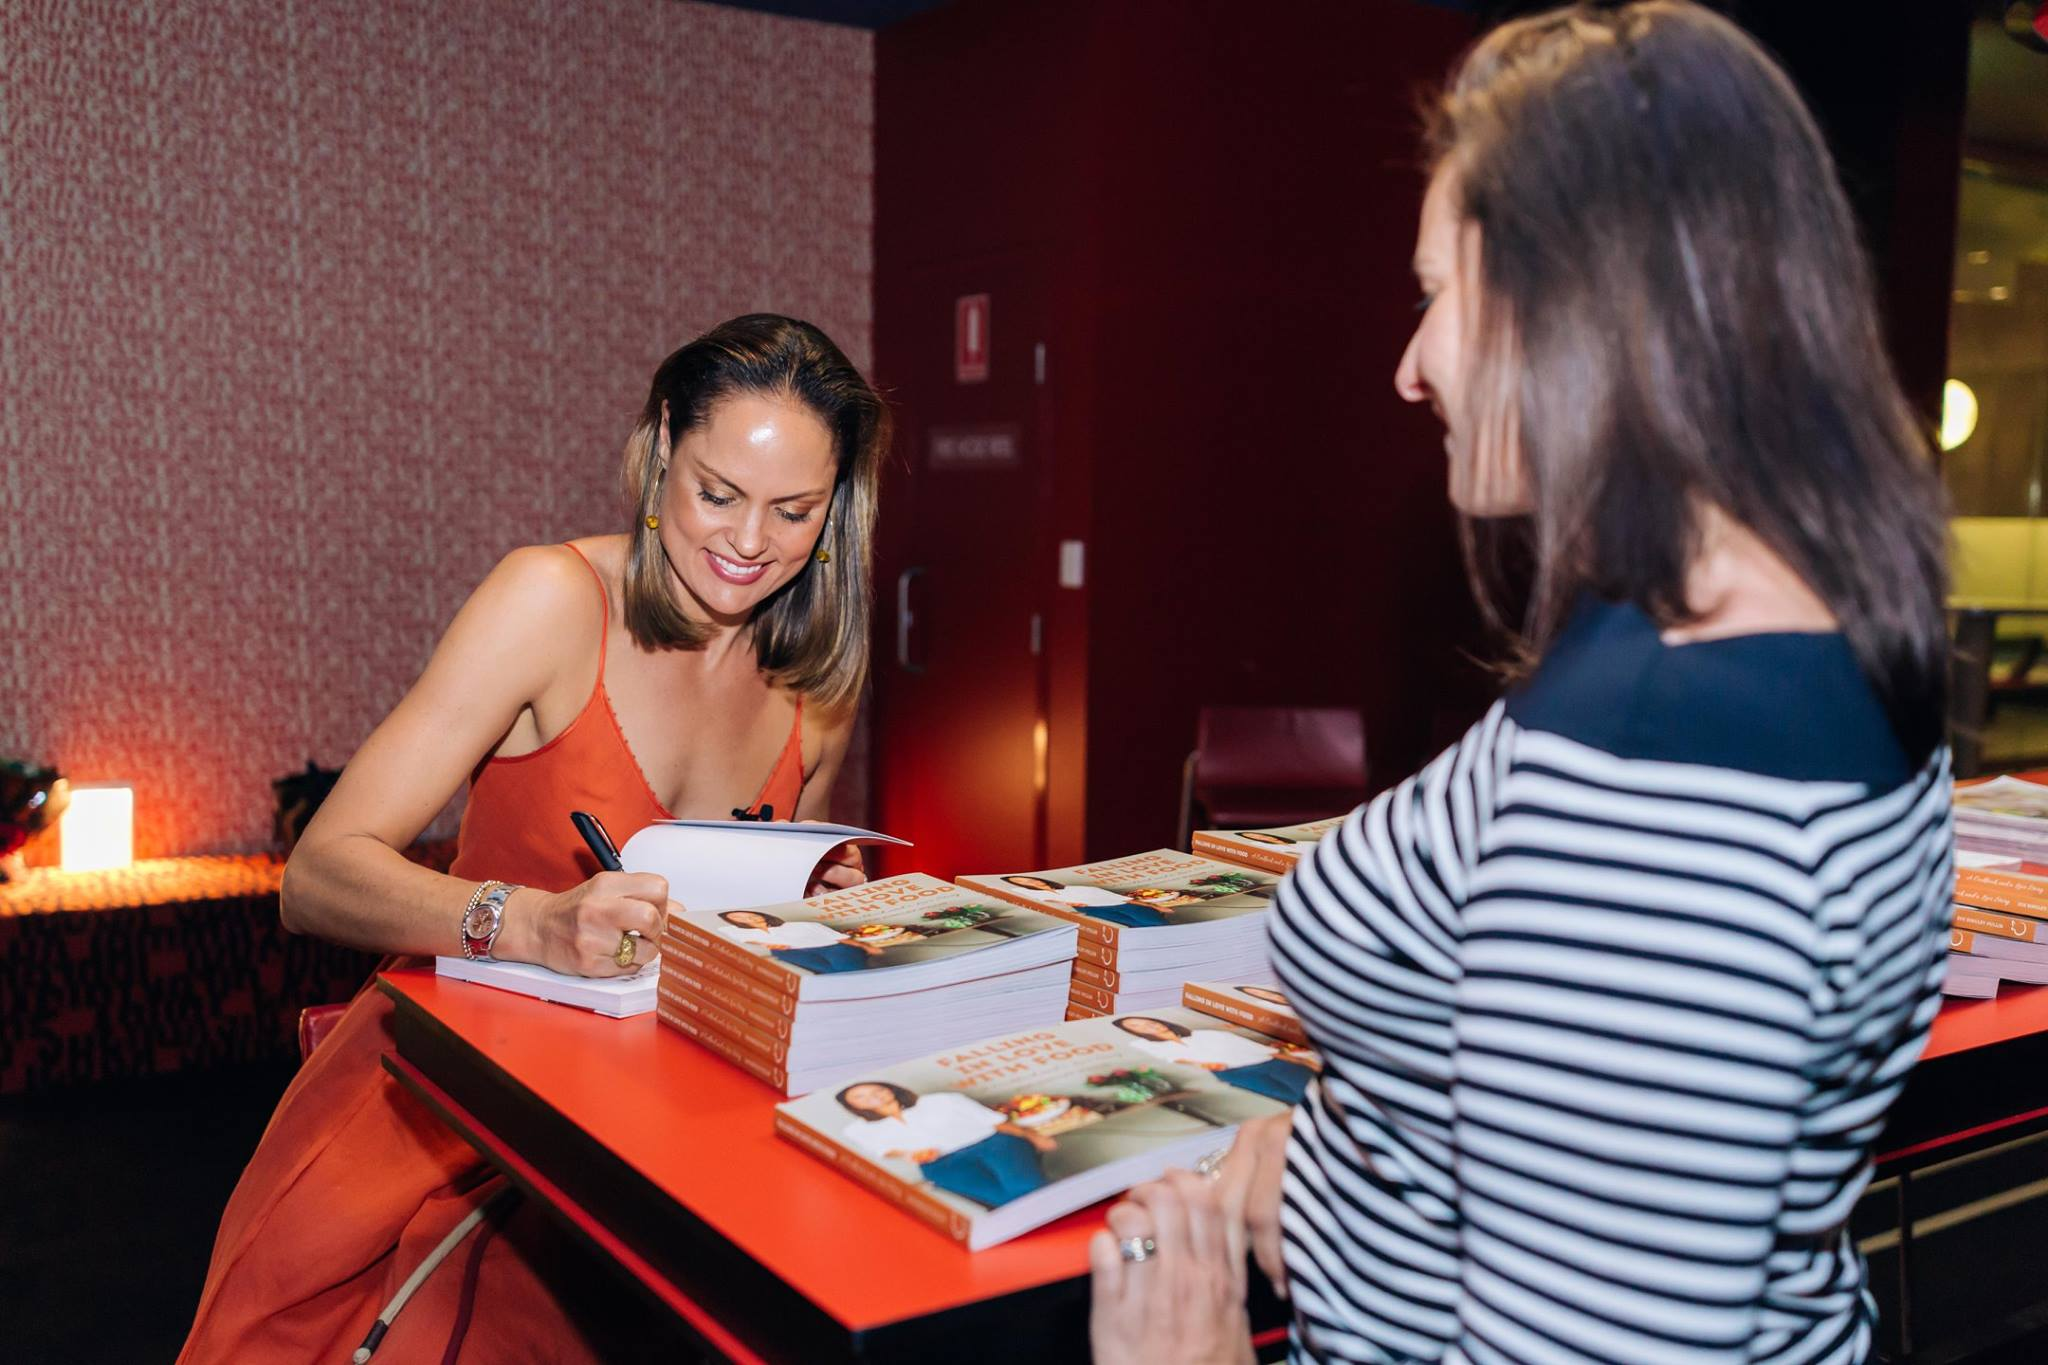 Zoe Bingley-Pullin generously signs copies of her latest cookbook, 'Falling in Love with Food'.  Zoe has now created an online program of the same name, super easy and fun, check it out: http://www.fallinginlovewithfood.com/